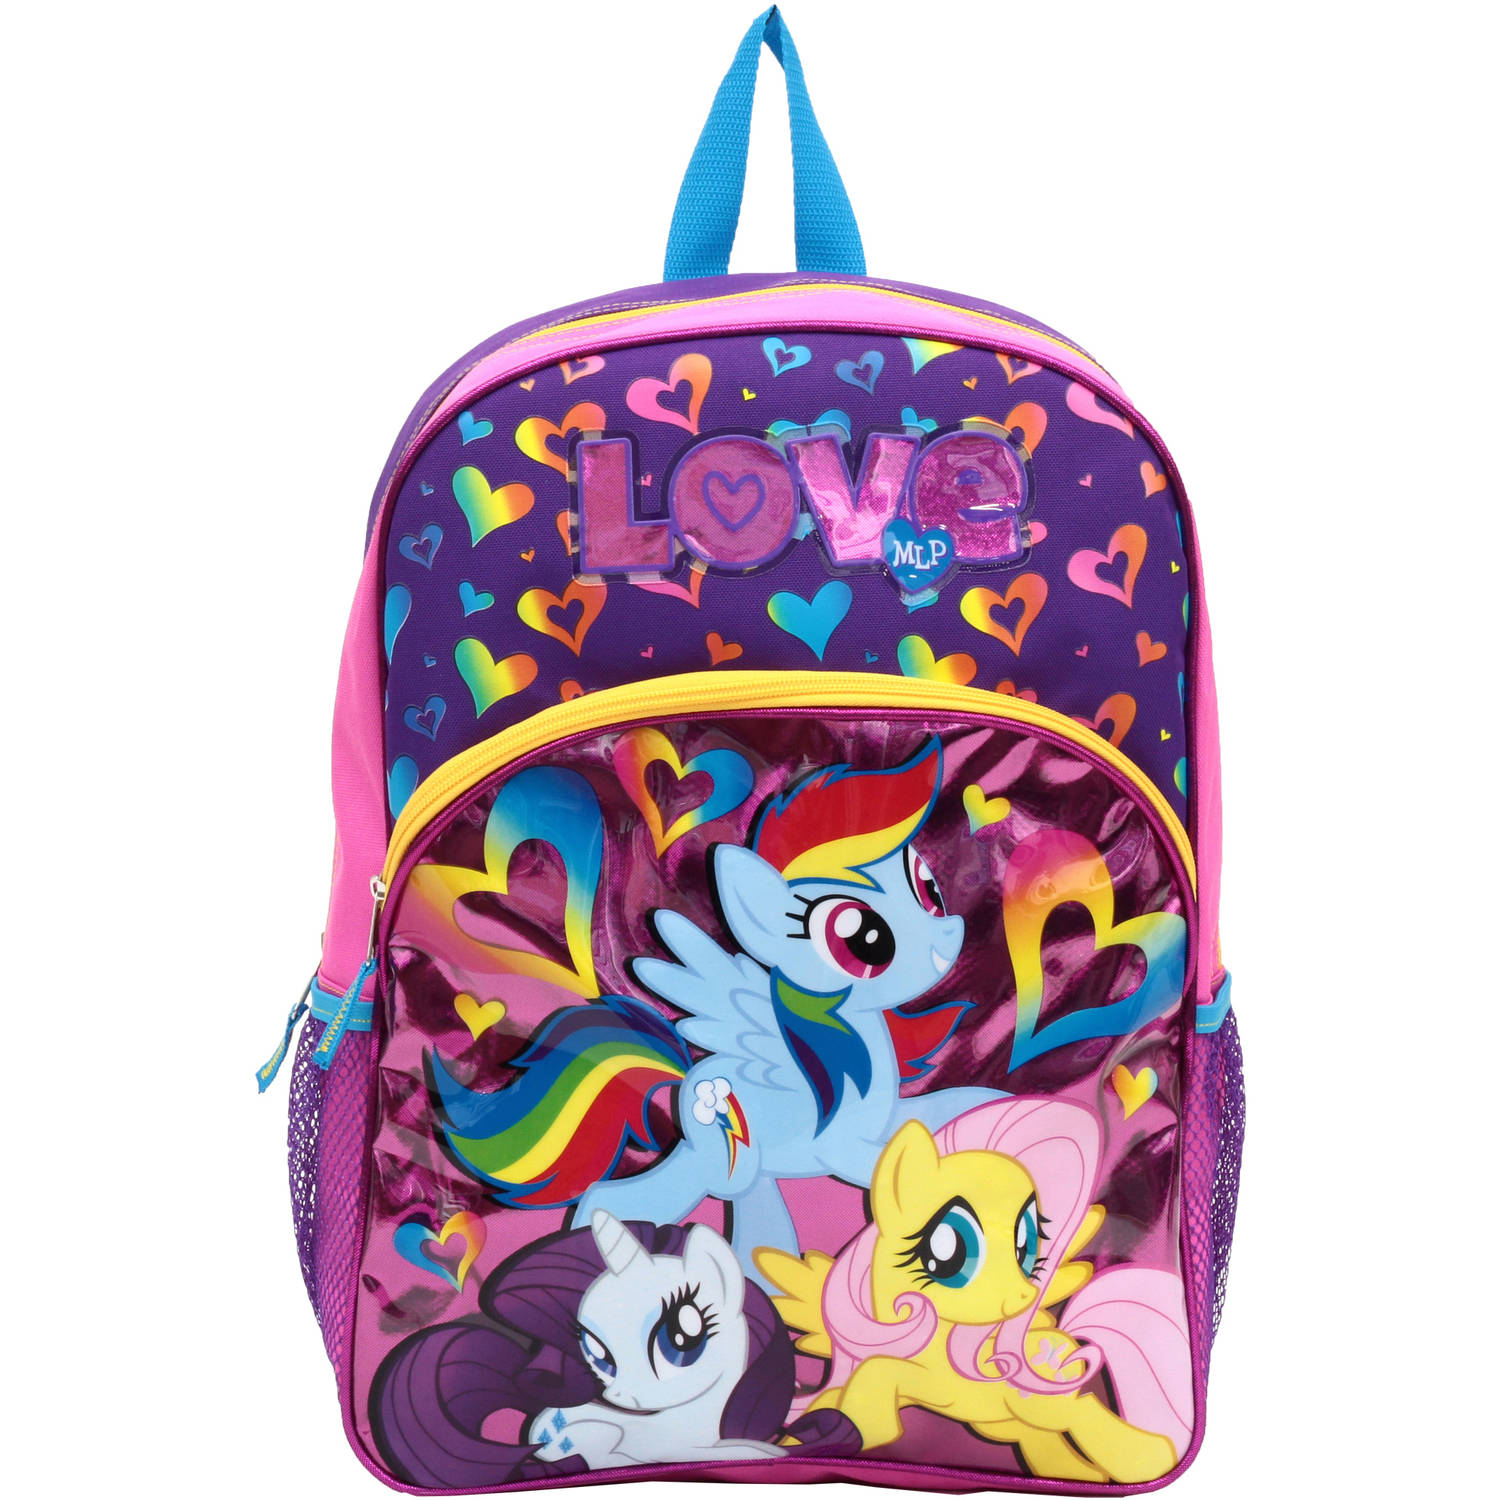 Backpacks For Little Kids 3aV7NIuB